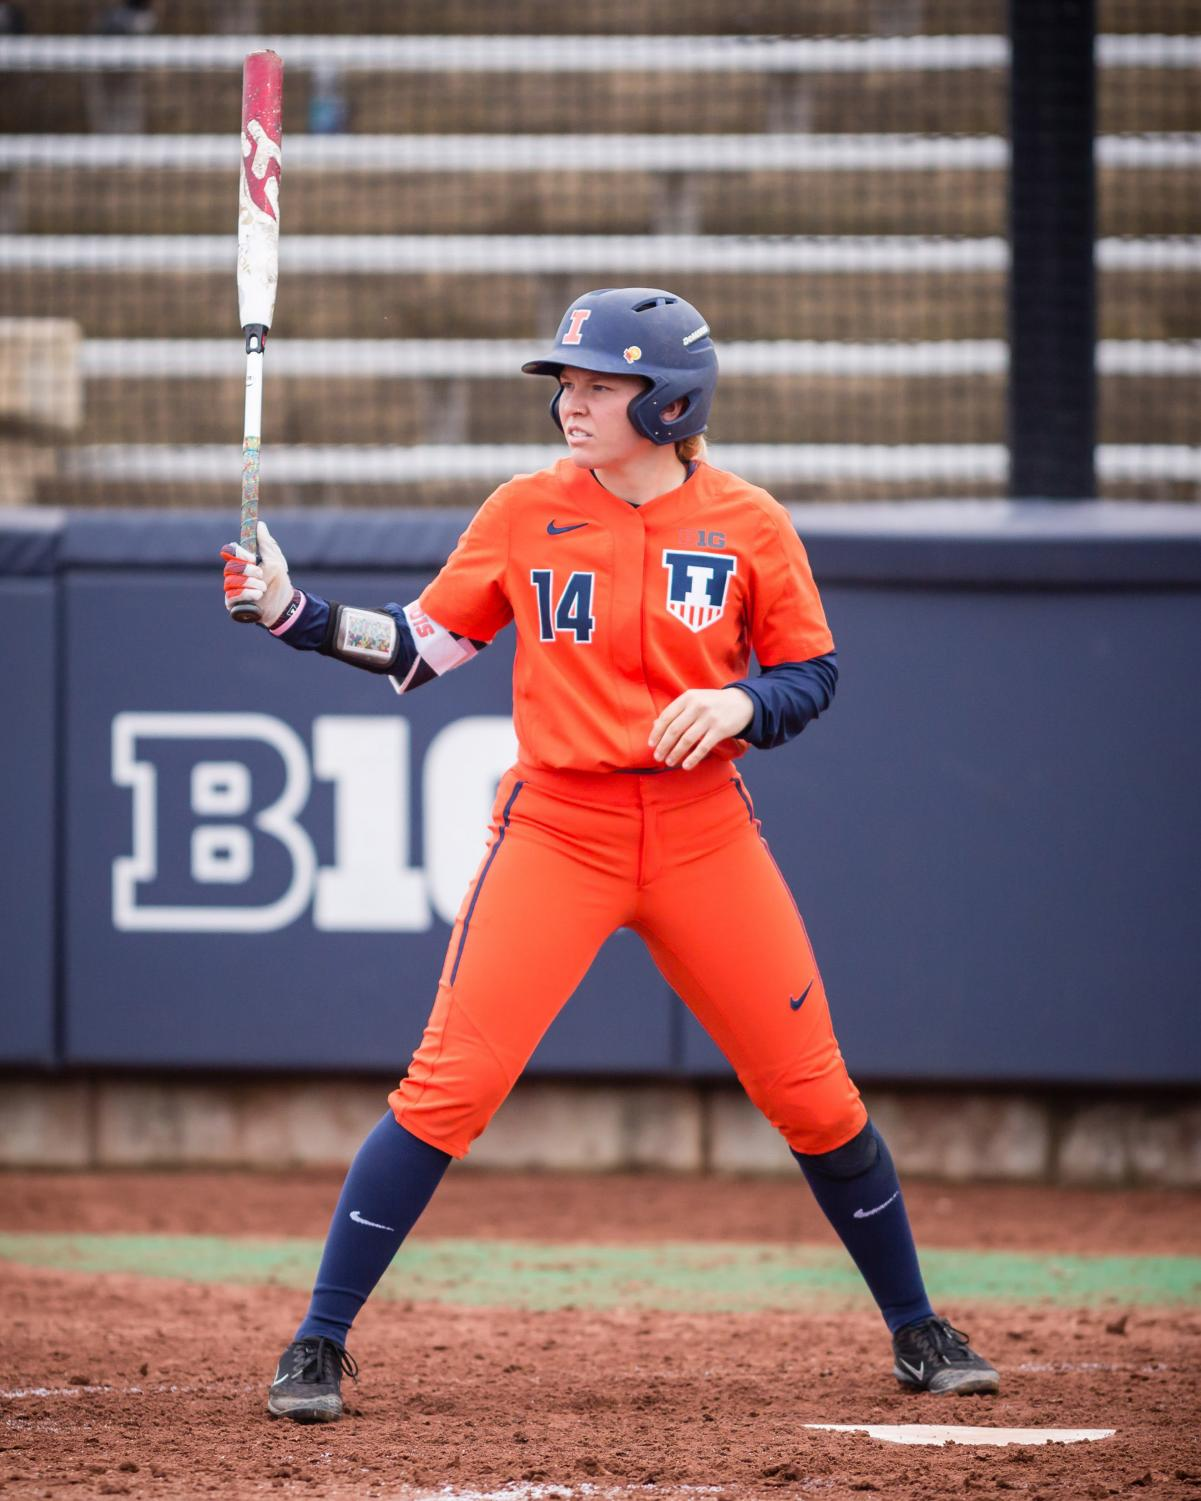 Illinois outfielder Maddi Doane (14) gets ready for her at bat during the game against Northwestern at Eichelberger Field on Wednesday, Mar. 28, 2018.